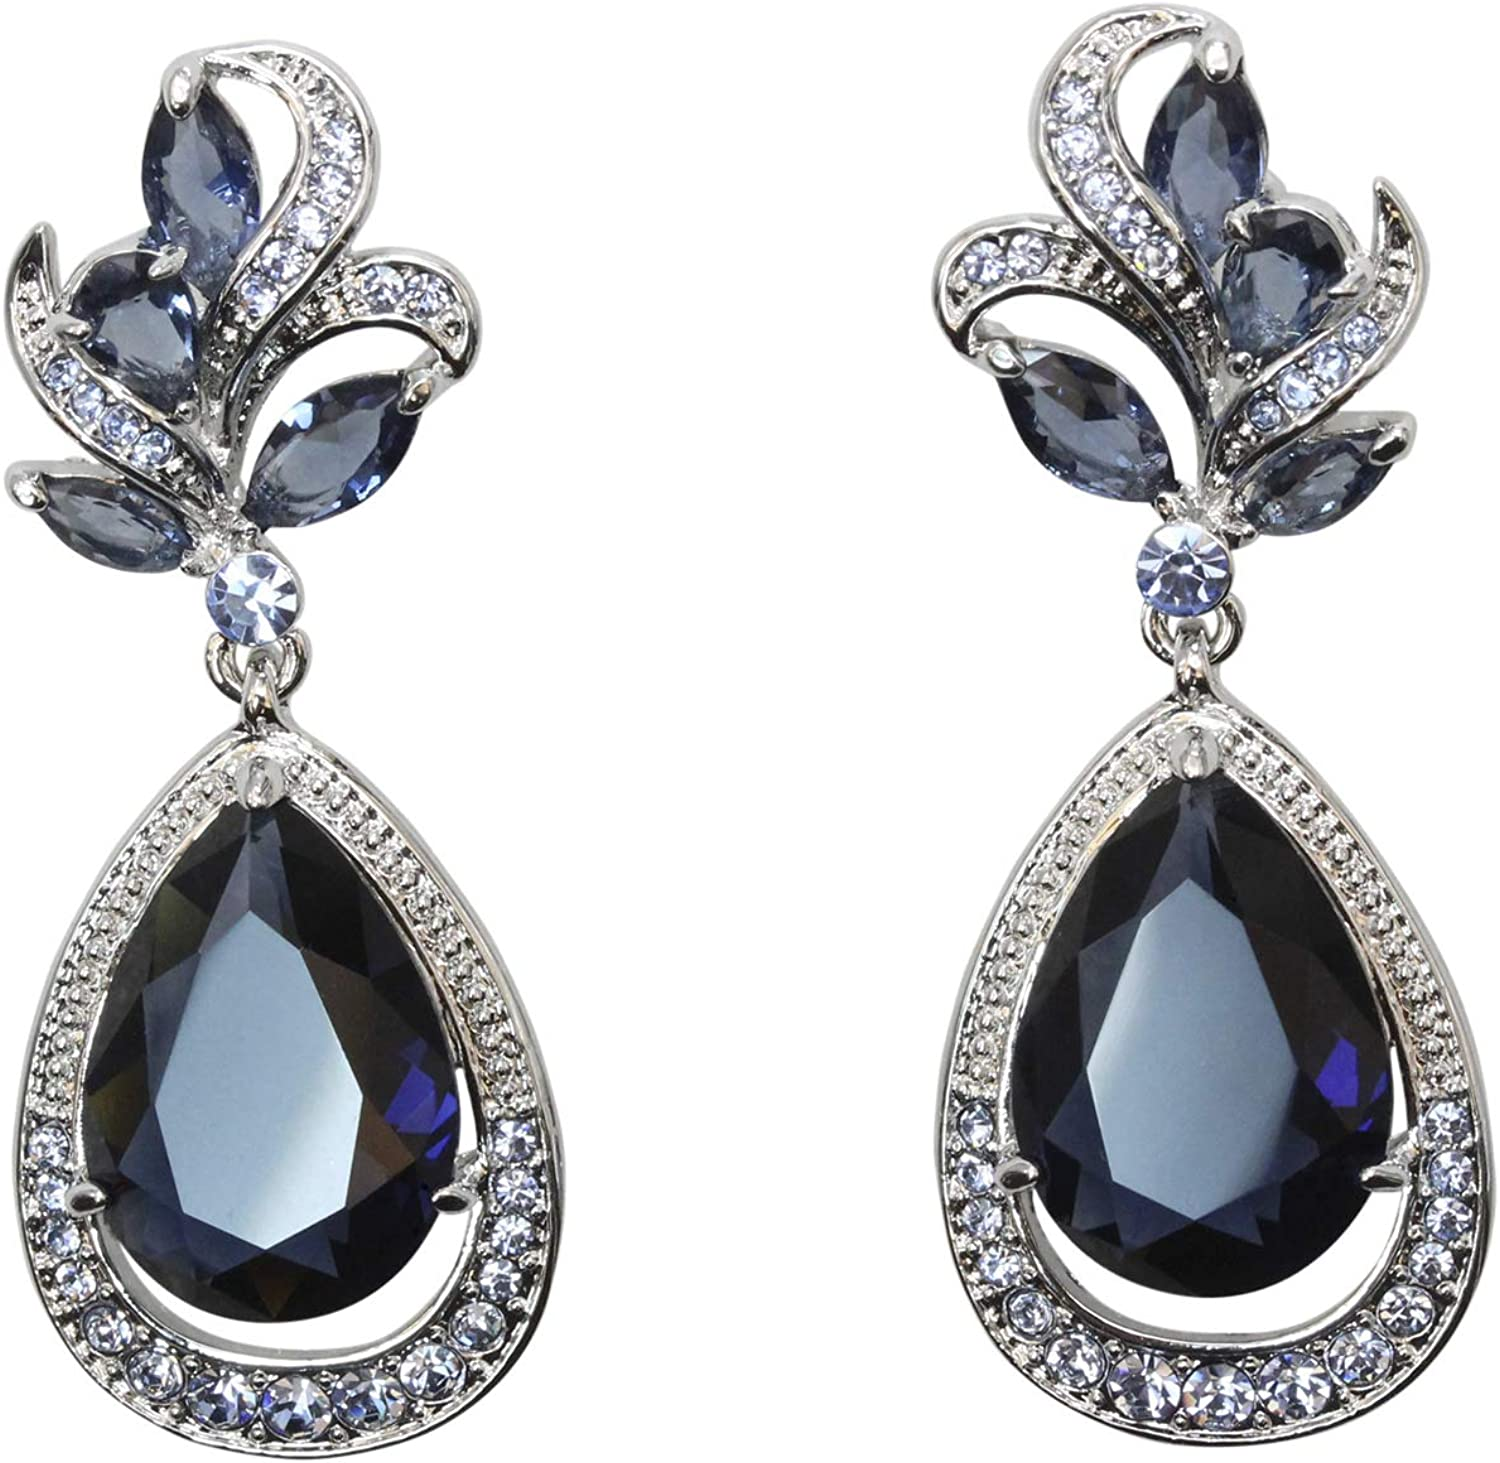 Faship Gorgeous CZ Crystal Dangling Floral Earrings